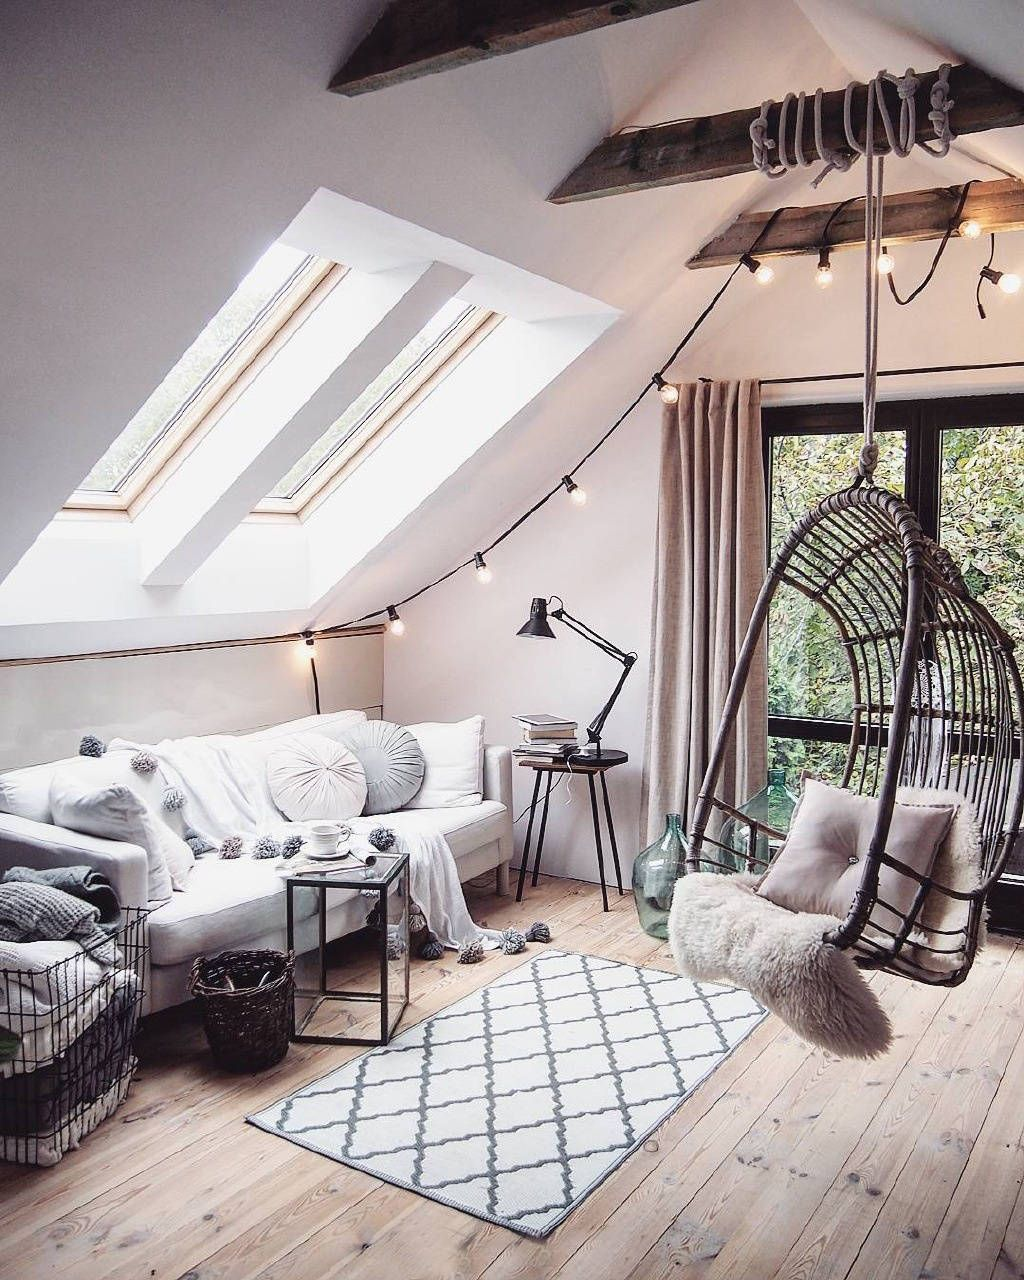 Loft bedroom design ideas  I would very much love to live in a loft like this that filled with